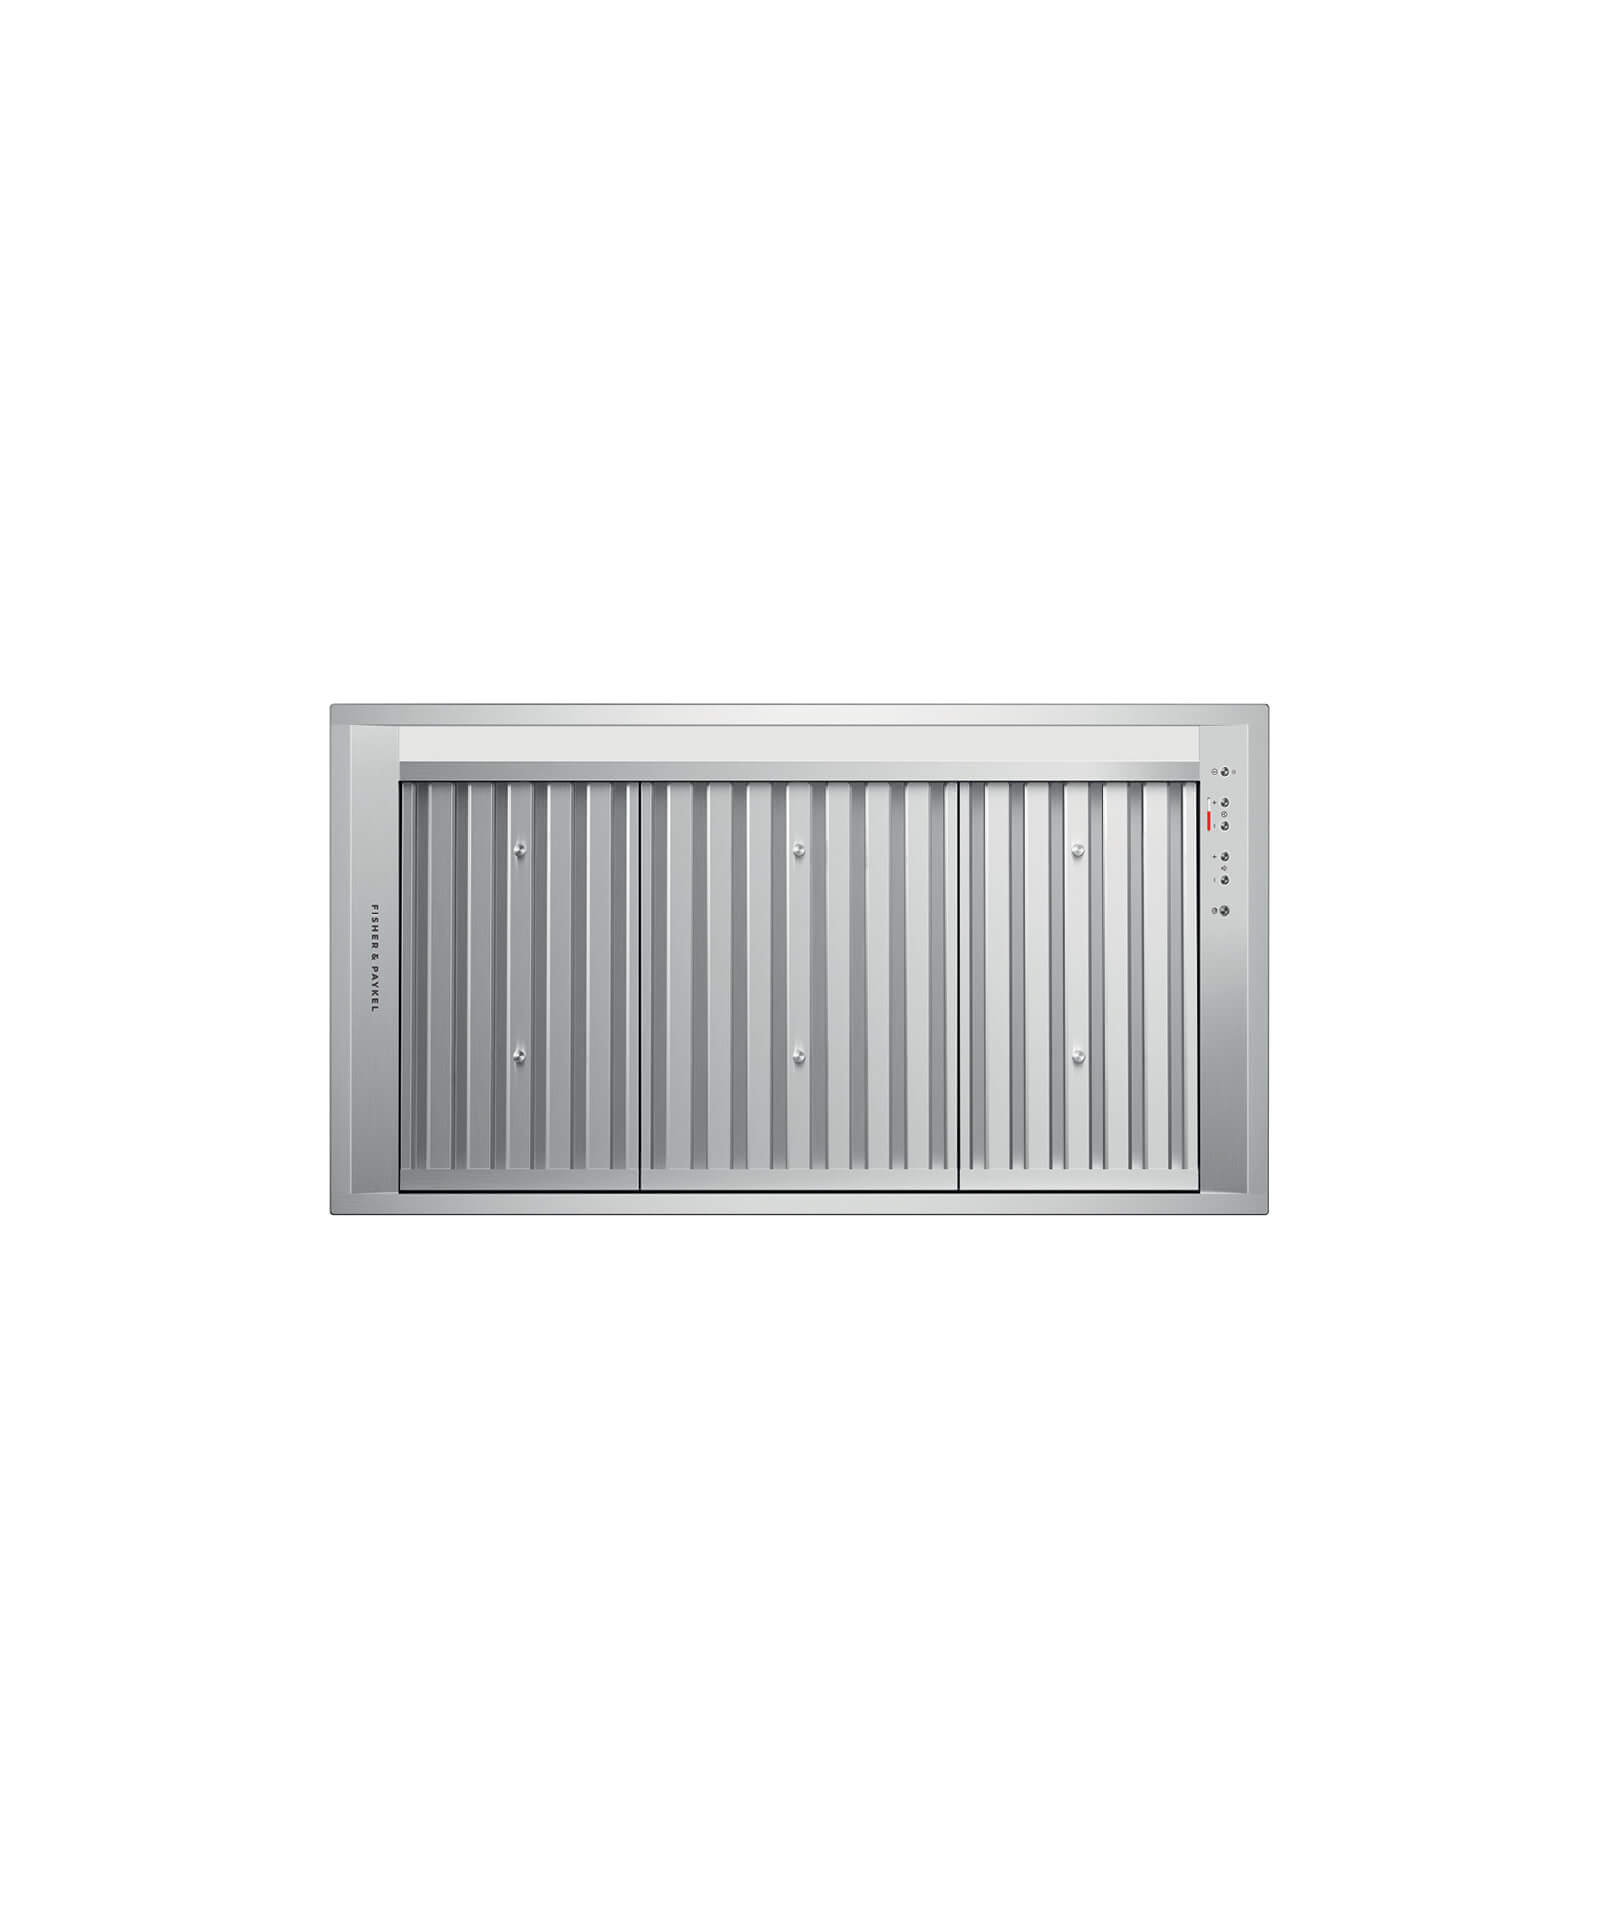 Fisher and Paykel Insert Range Hood 36""